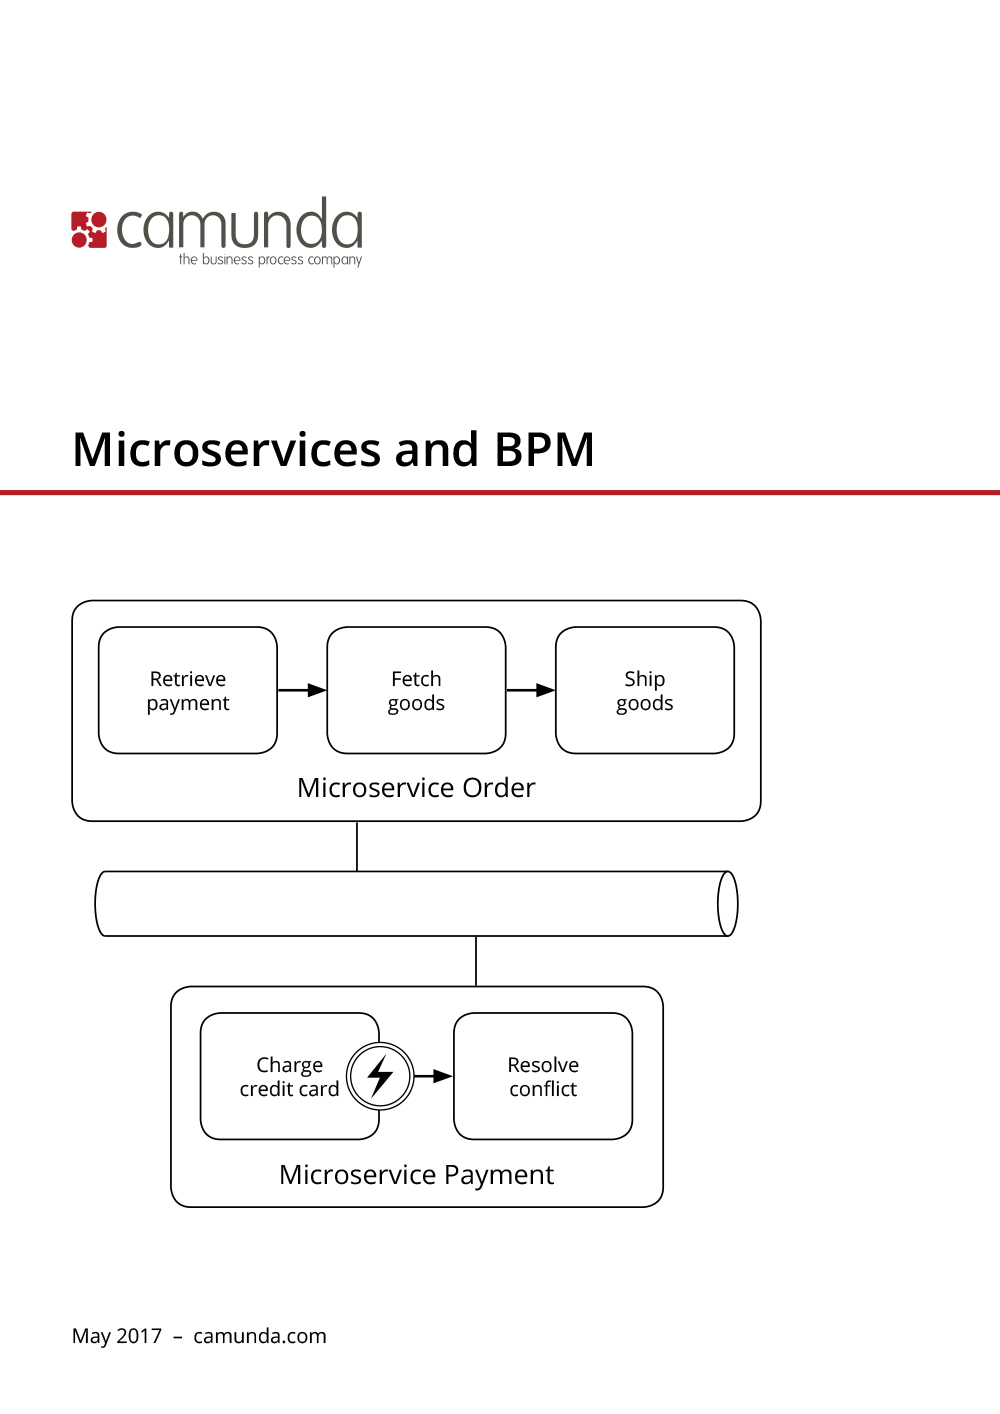 Microservices and BPM